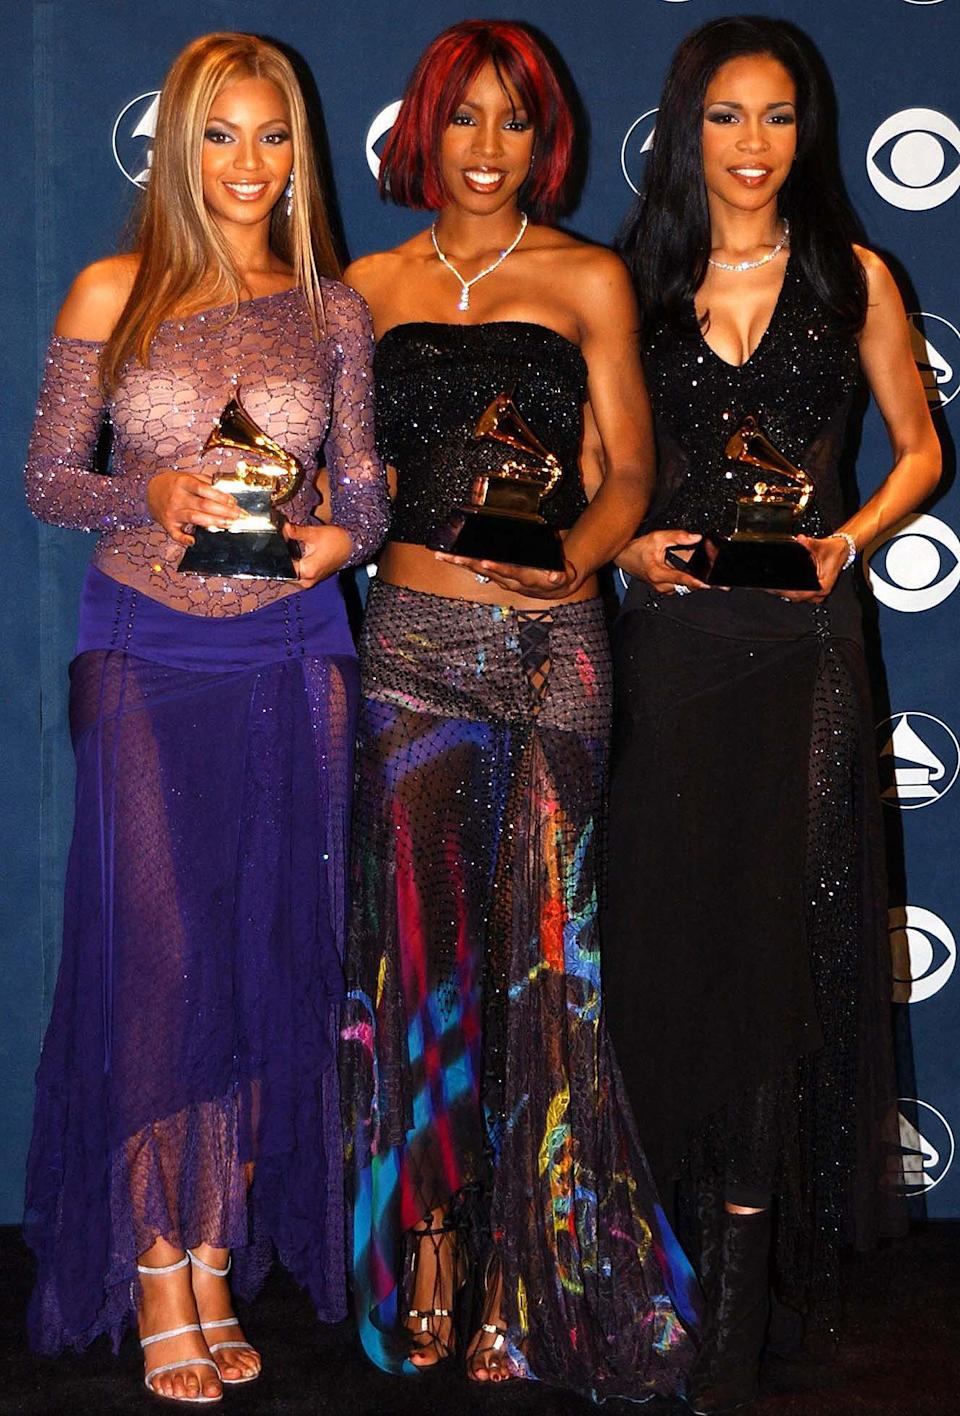 <p>In 2002, the group was nominated again for best R&B album for <em>Survivor</em> and best R&B performance by a group for their song of the same name; they won the latter. </p> <p><strong>Beyoncé's Grammy Tally:</strong> 3</p>